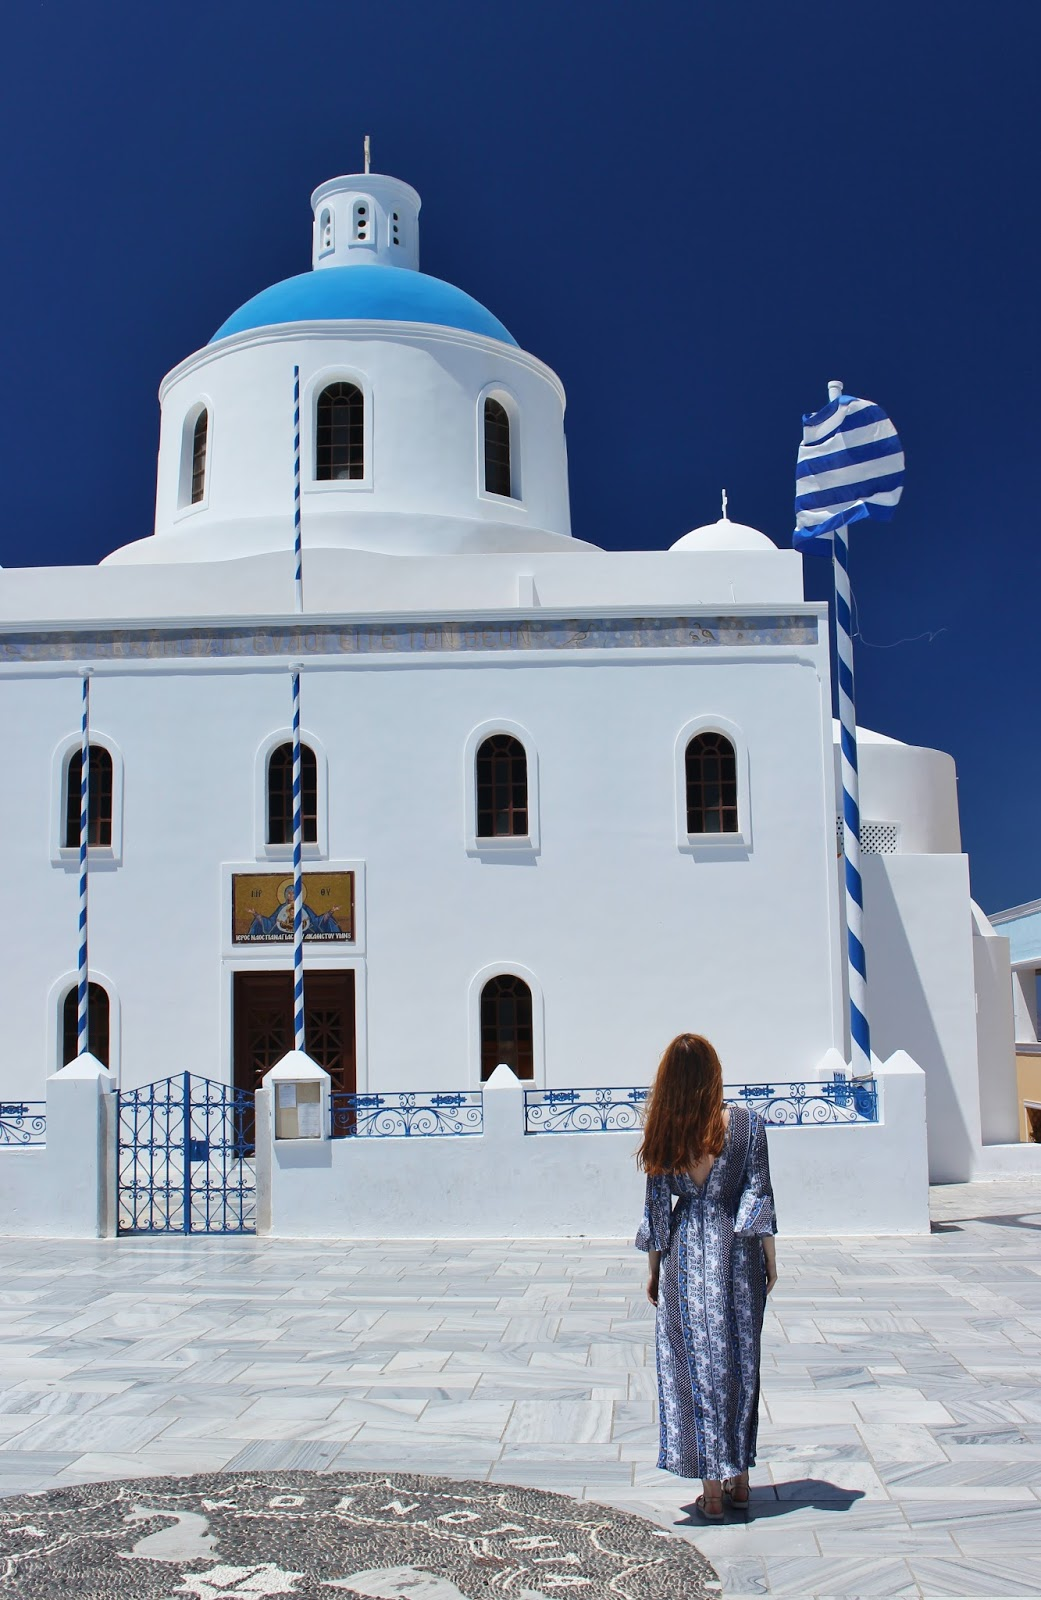 greece, lucie srbová, česká blogerka, blogerka, santorini, blue dress